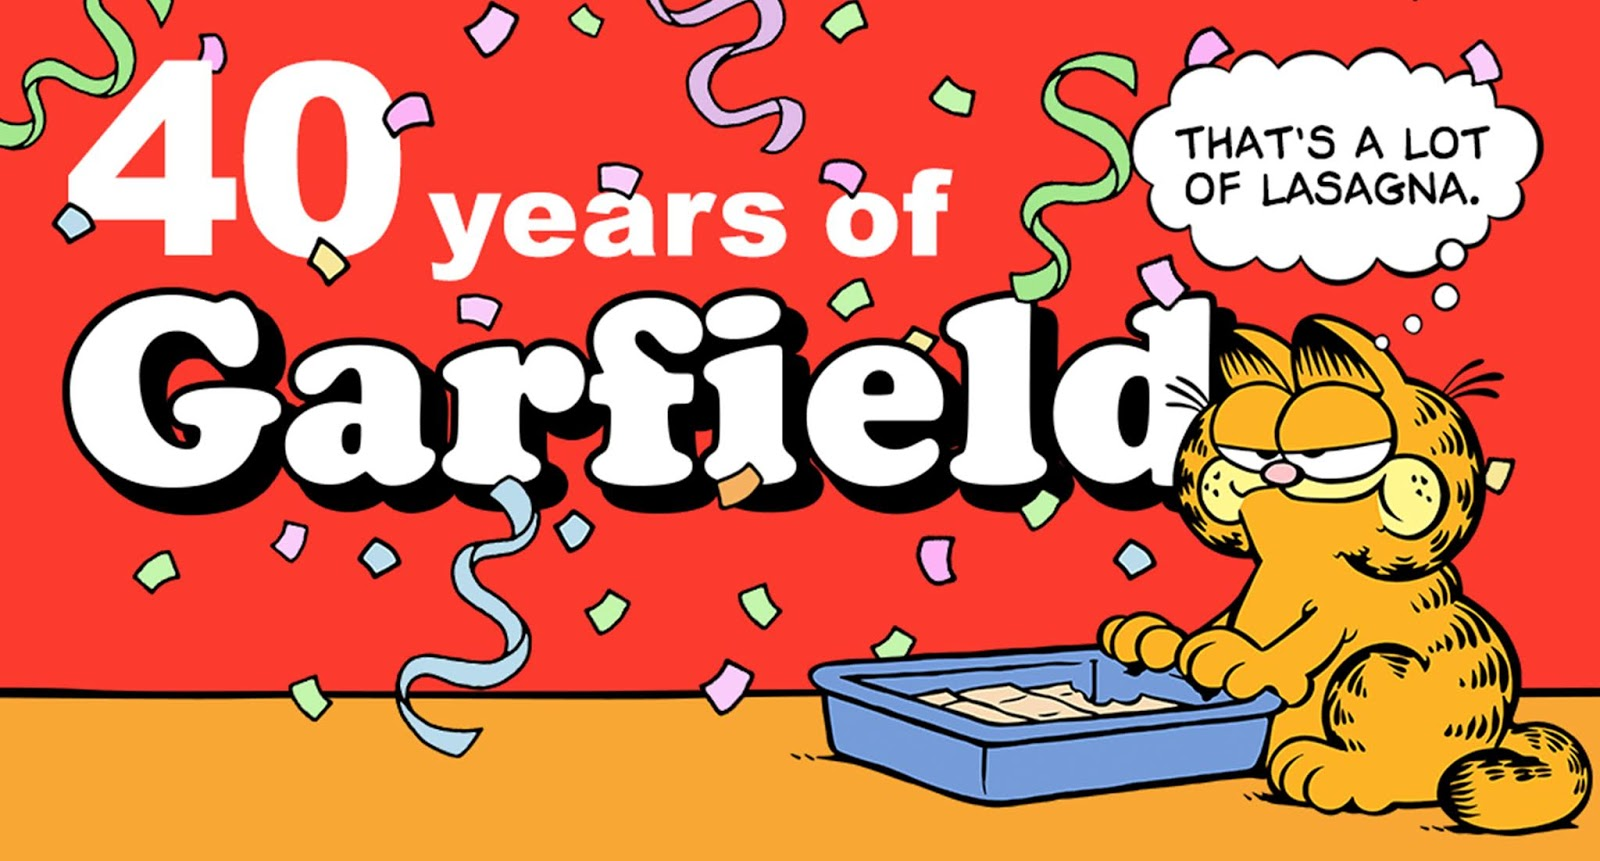 Celebrate Garfield S 40th Birthday With This Fun Infographic